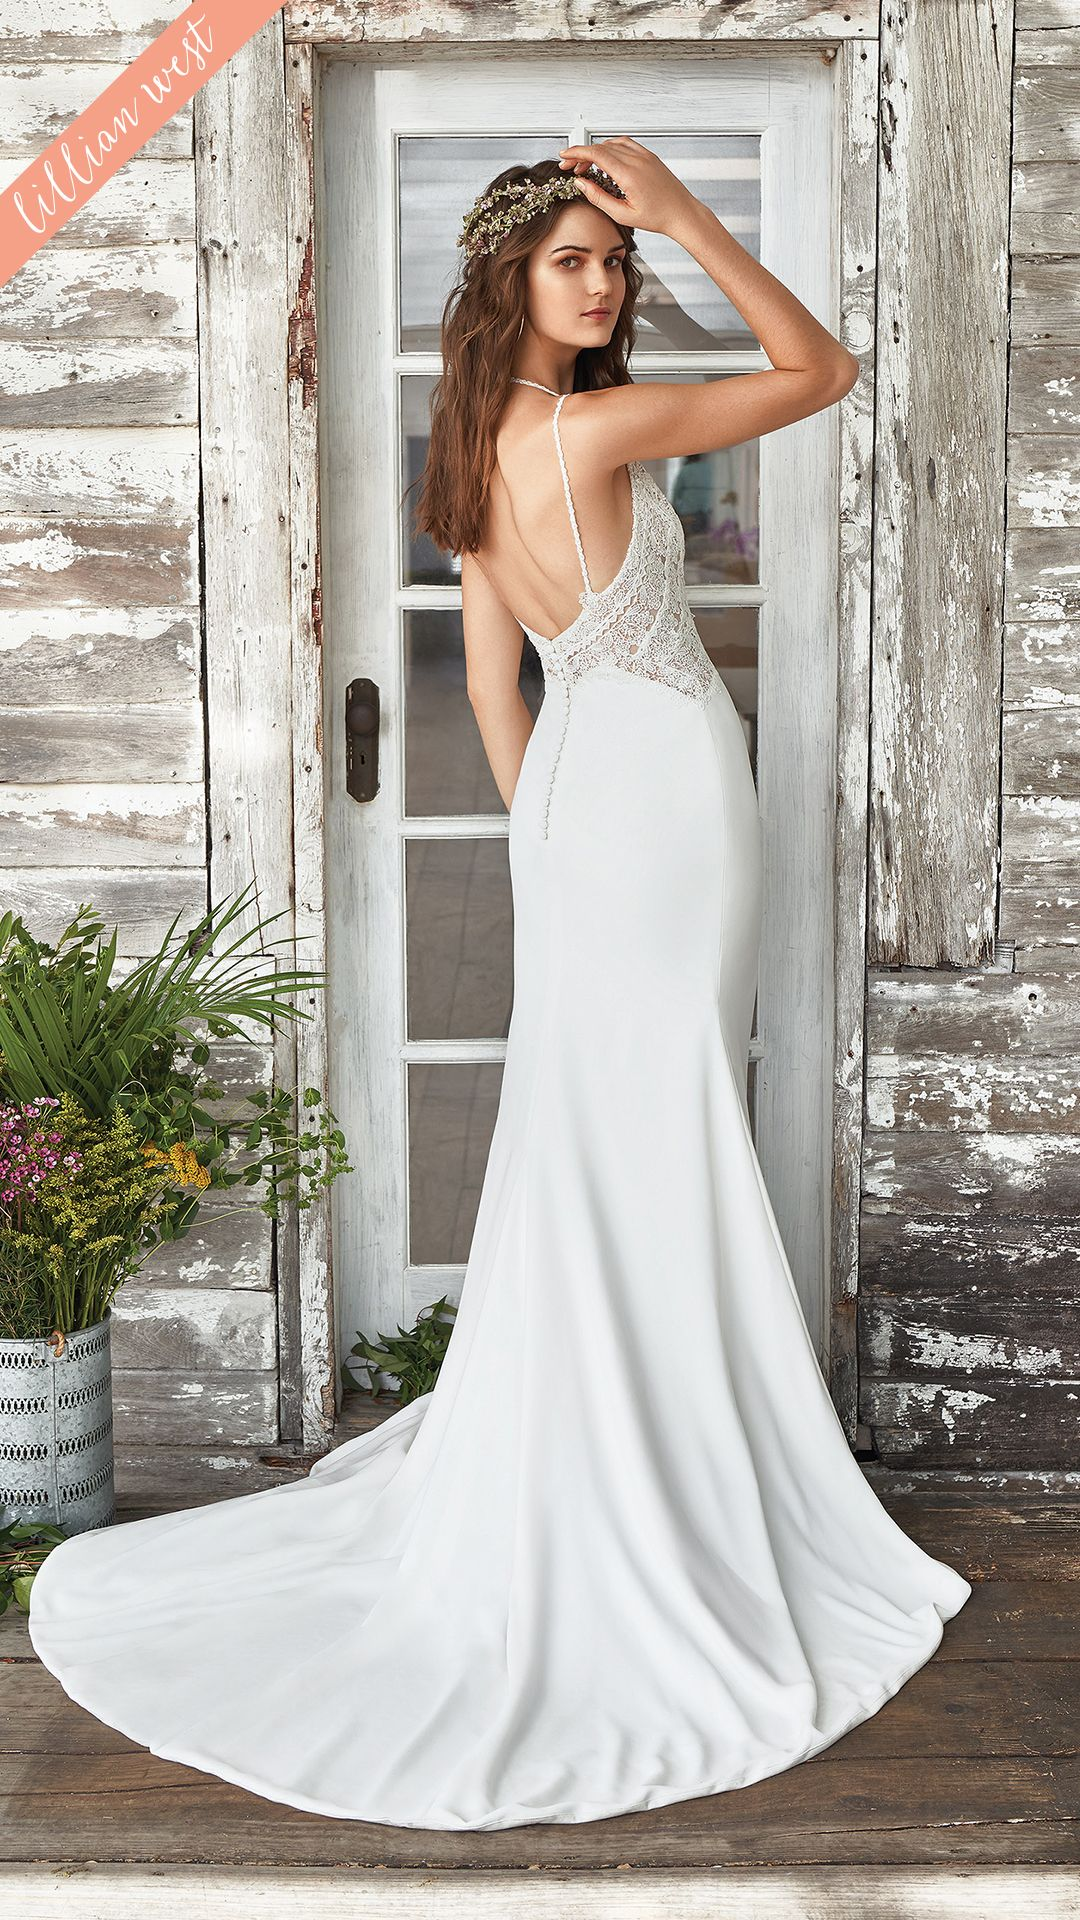 Style 66032 Fall In Love With This Sleek Fit And Flare Gown Paired With A Clean Crepe Skirt Nautical Wedding Dresses Lillian West Lillian West Wedding Dress